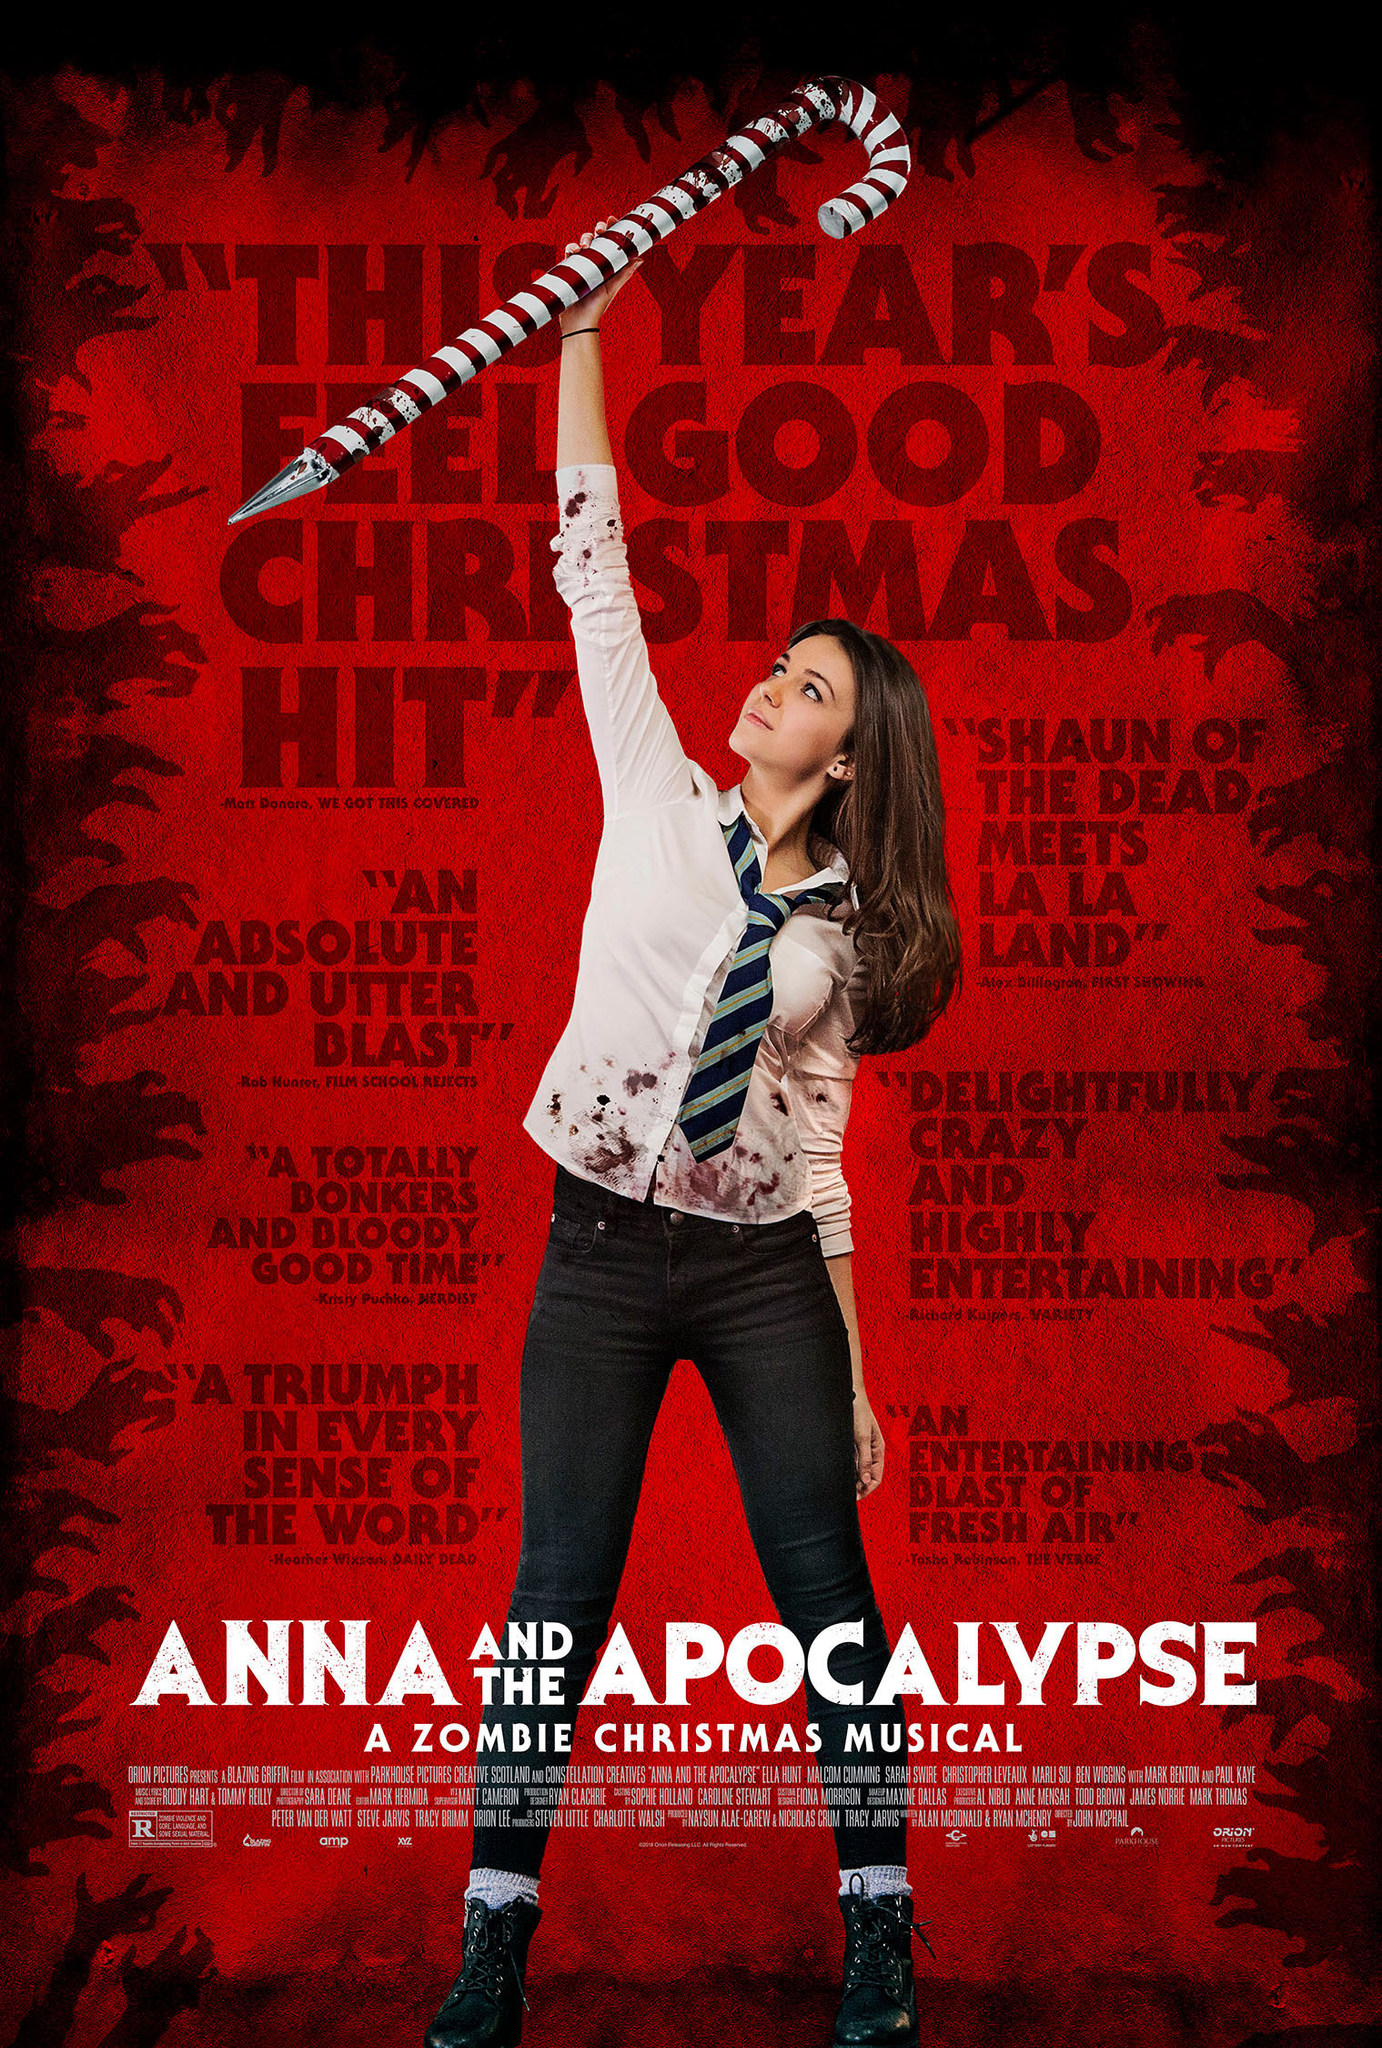 The film poster showing Ella Hunt raising a giant sharpened candy cane.